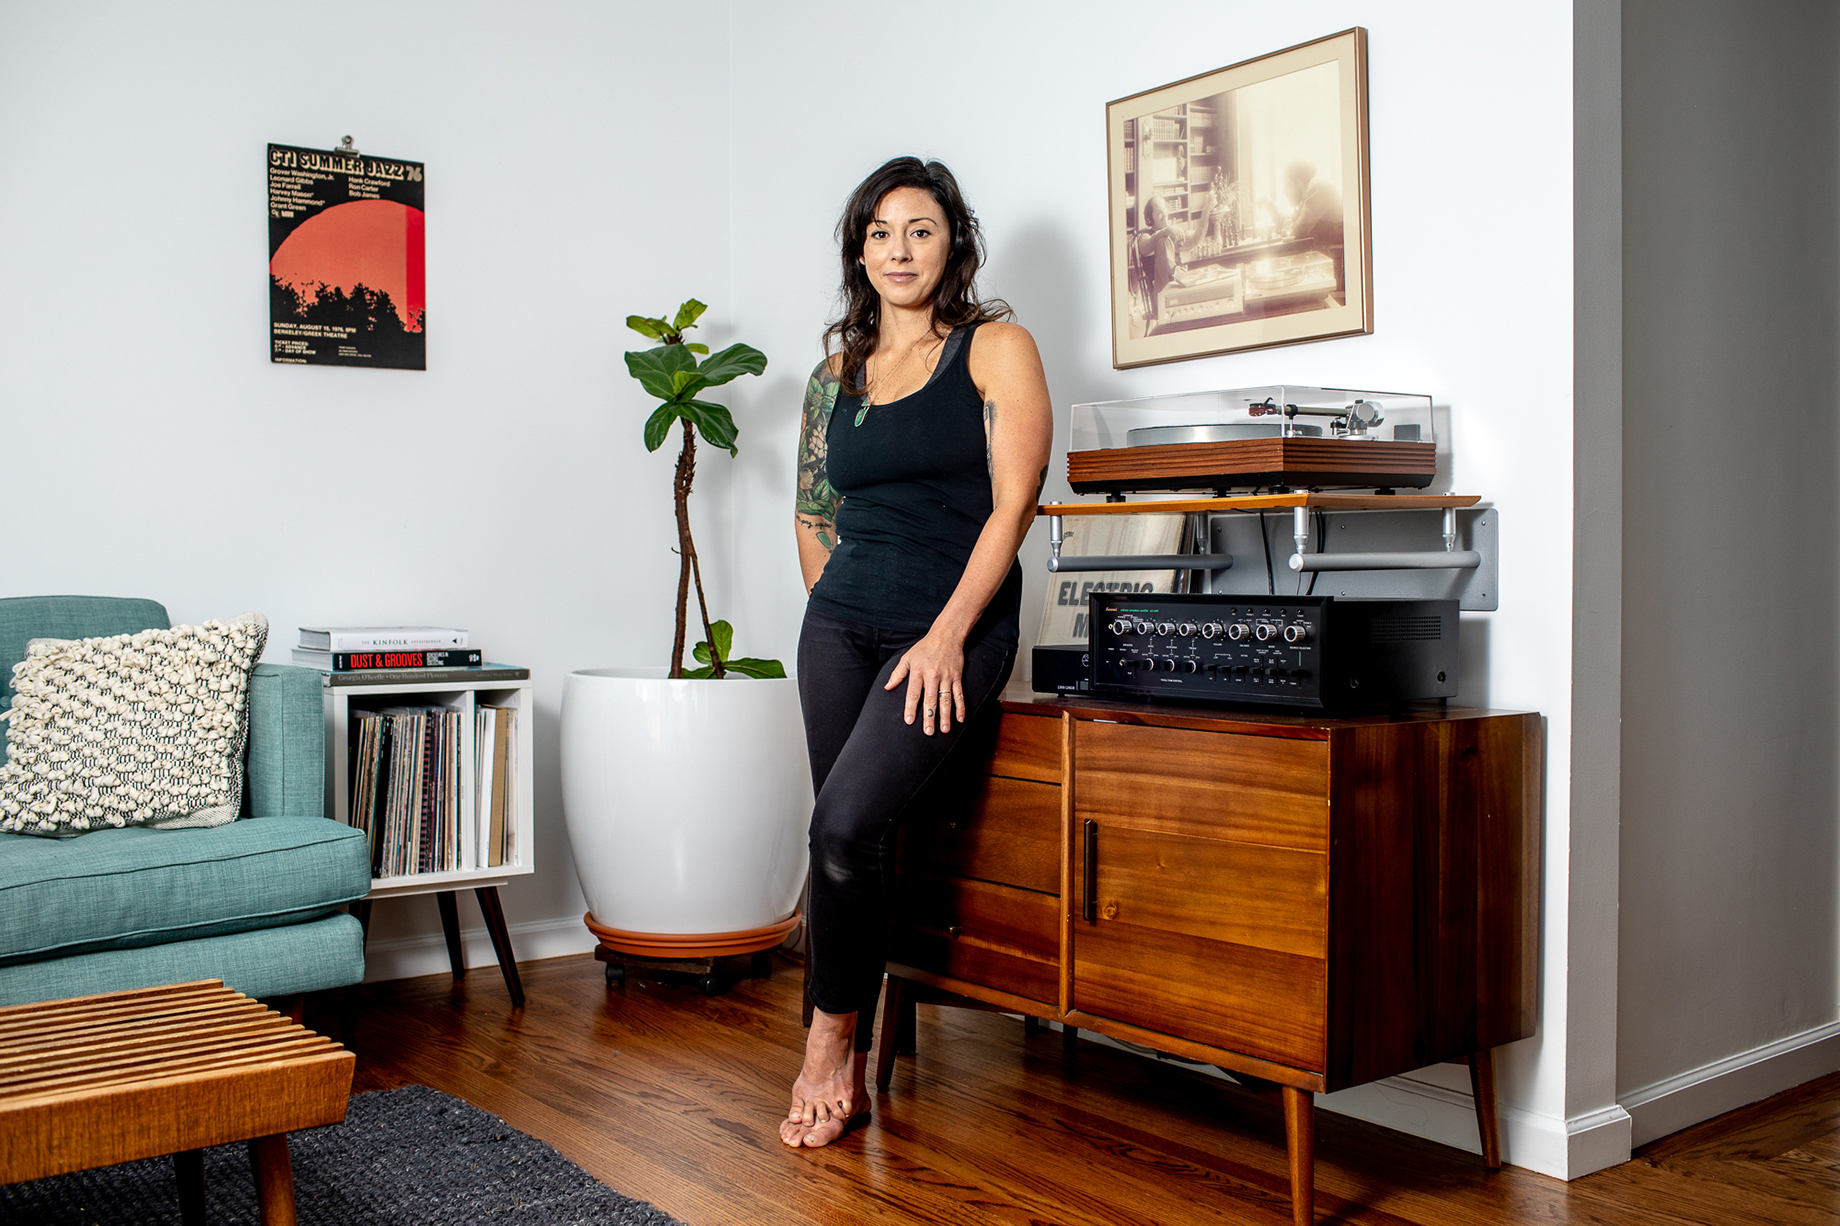 Woman leaning next to her record player shot by Jaime Borschuk for Women at Home project